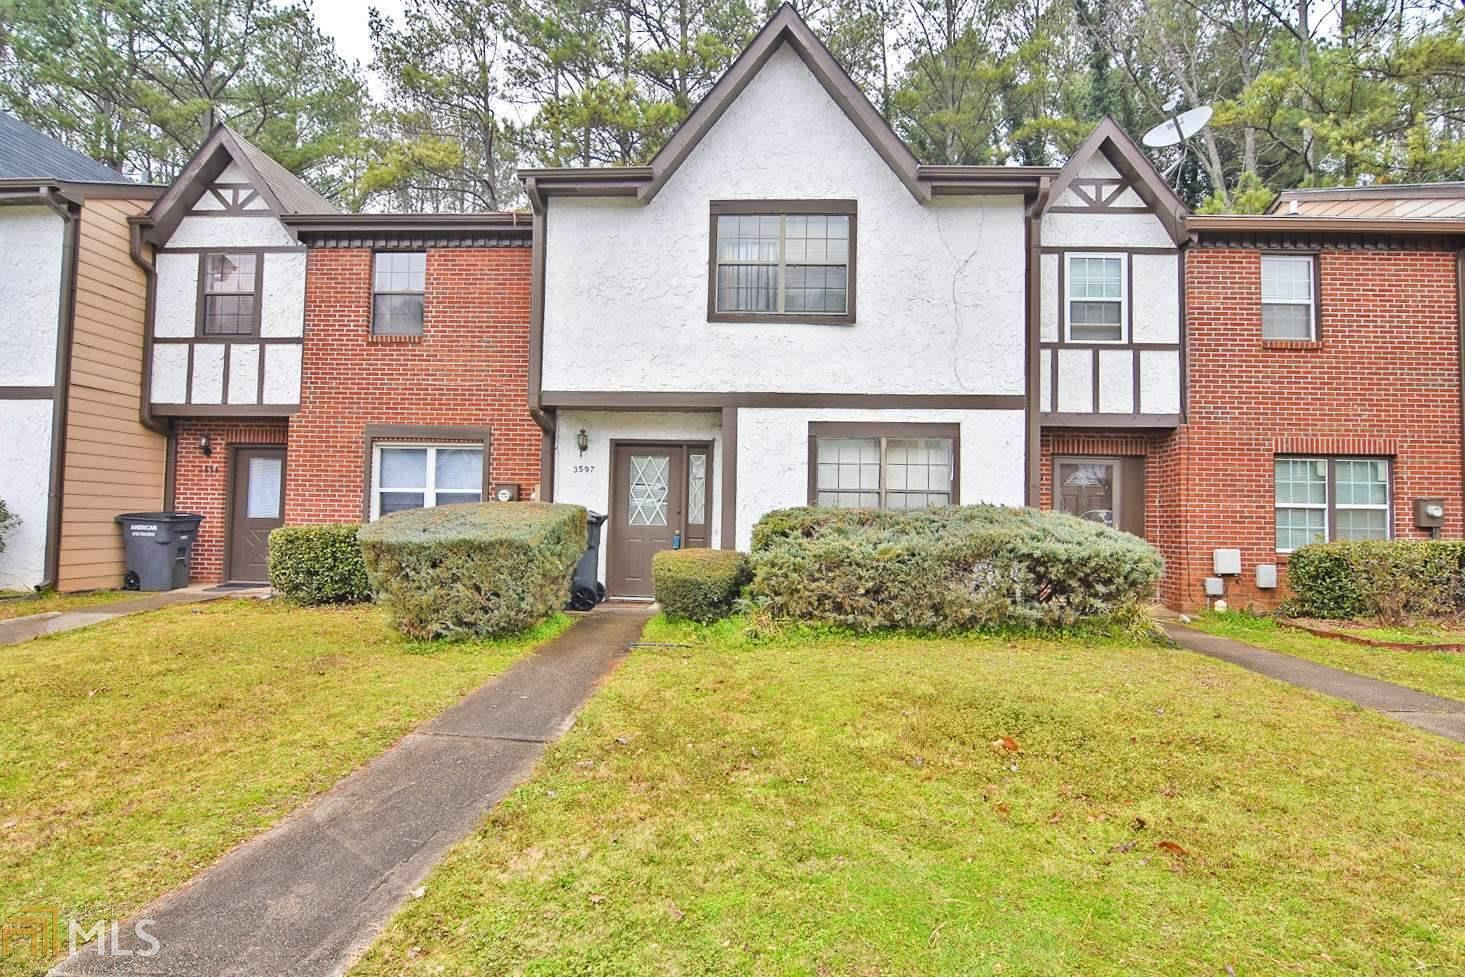 3597 Main Station Dr, Marietta, GA 30008 - MLS#: 8728800